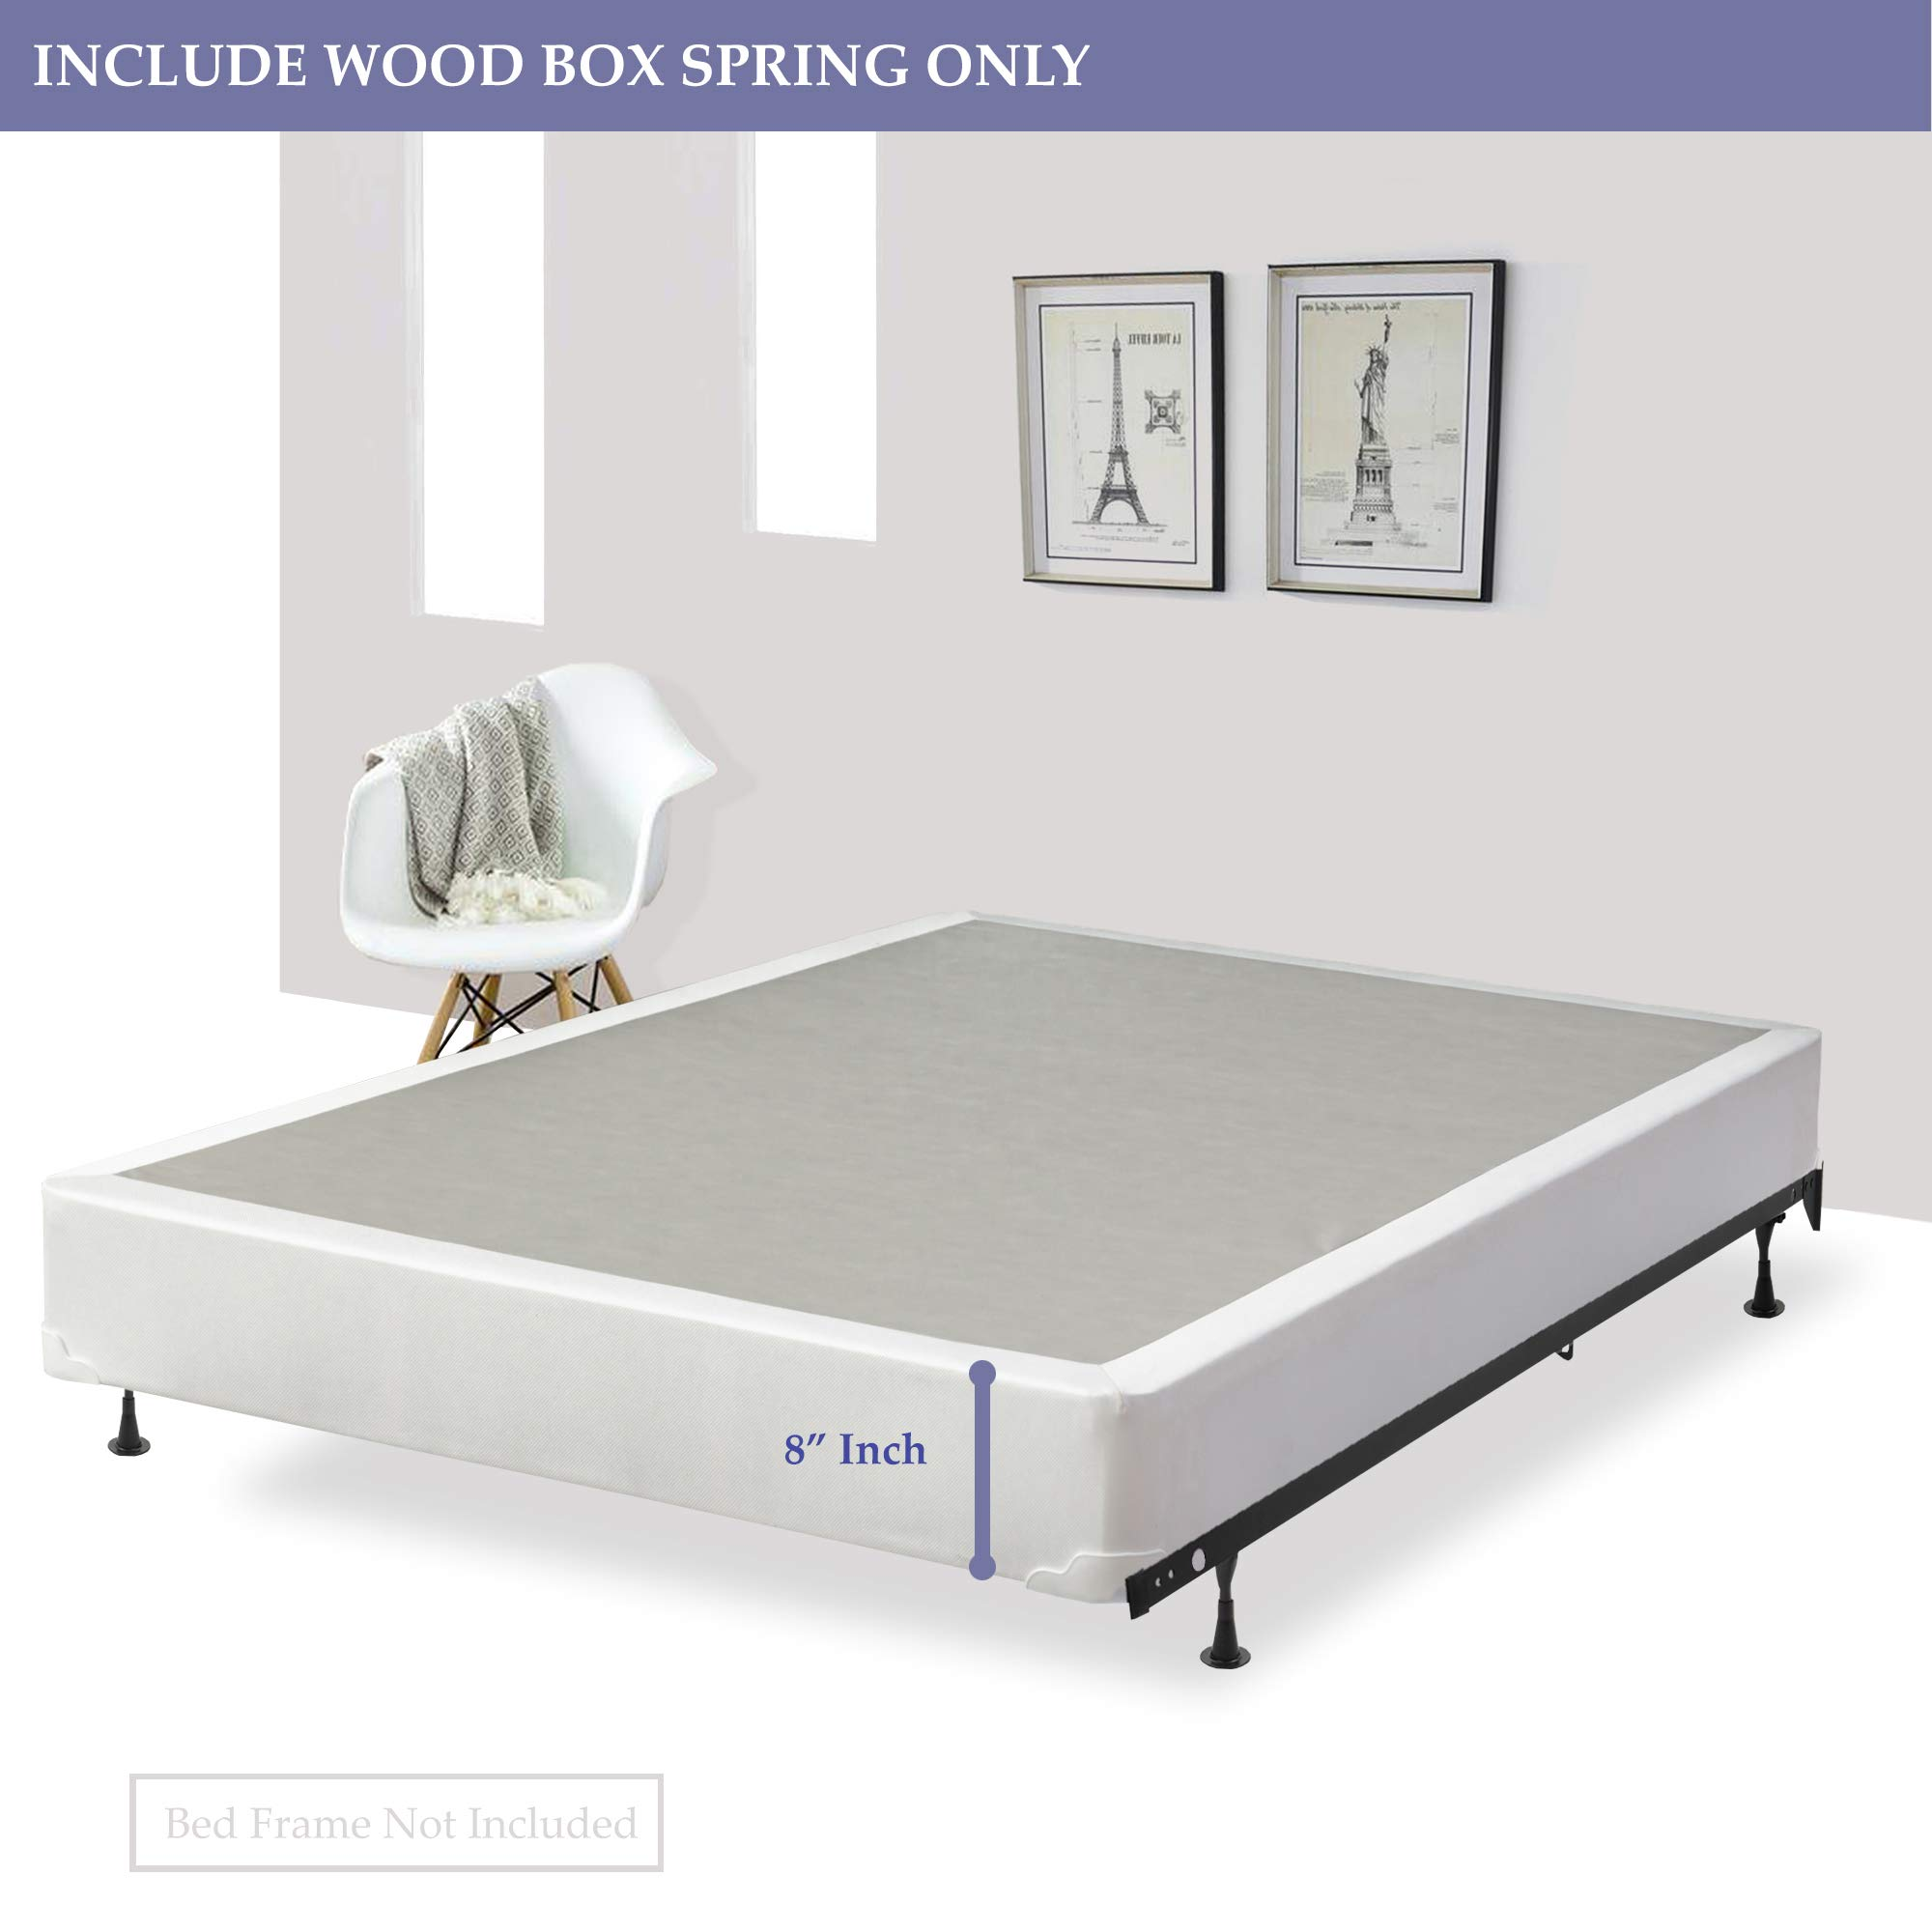 Spring Sleep 8'' Twin Size Assembled Box Spring for Mattress, Splendorcollection by Spring Sleep